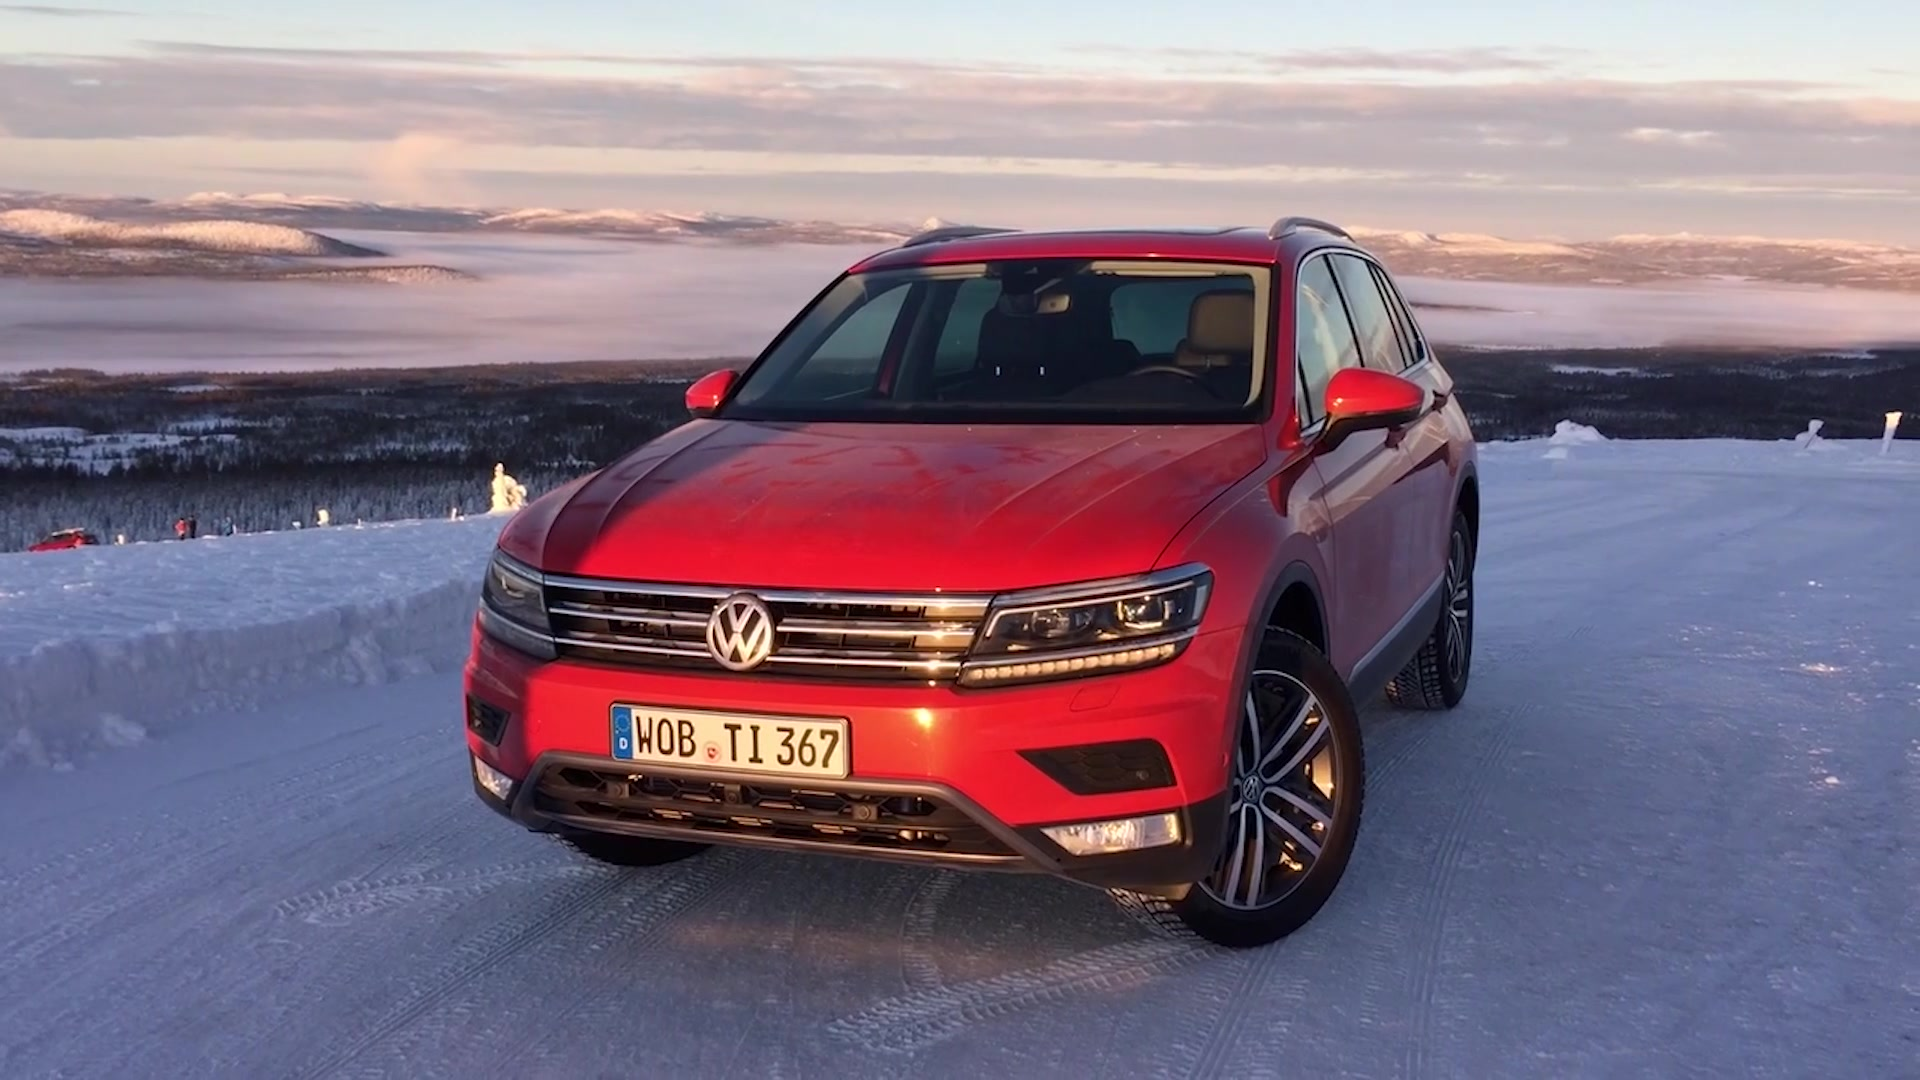 2017 Volkswagen Tiguan in Sweden | On Location